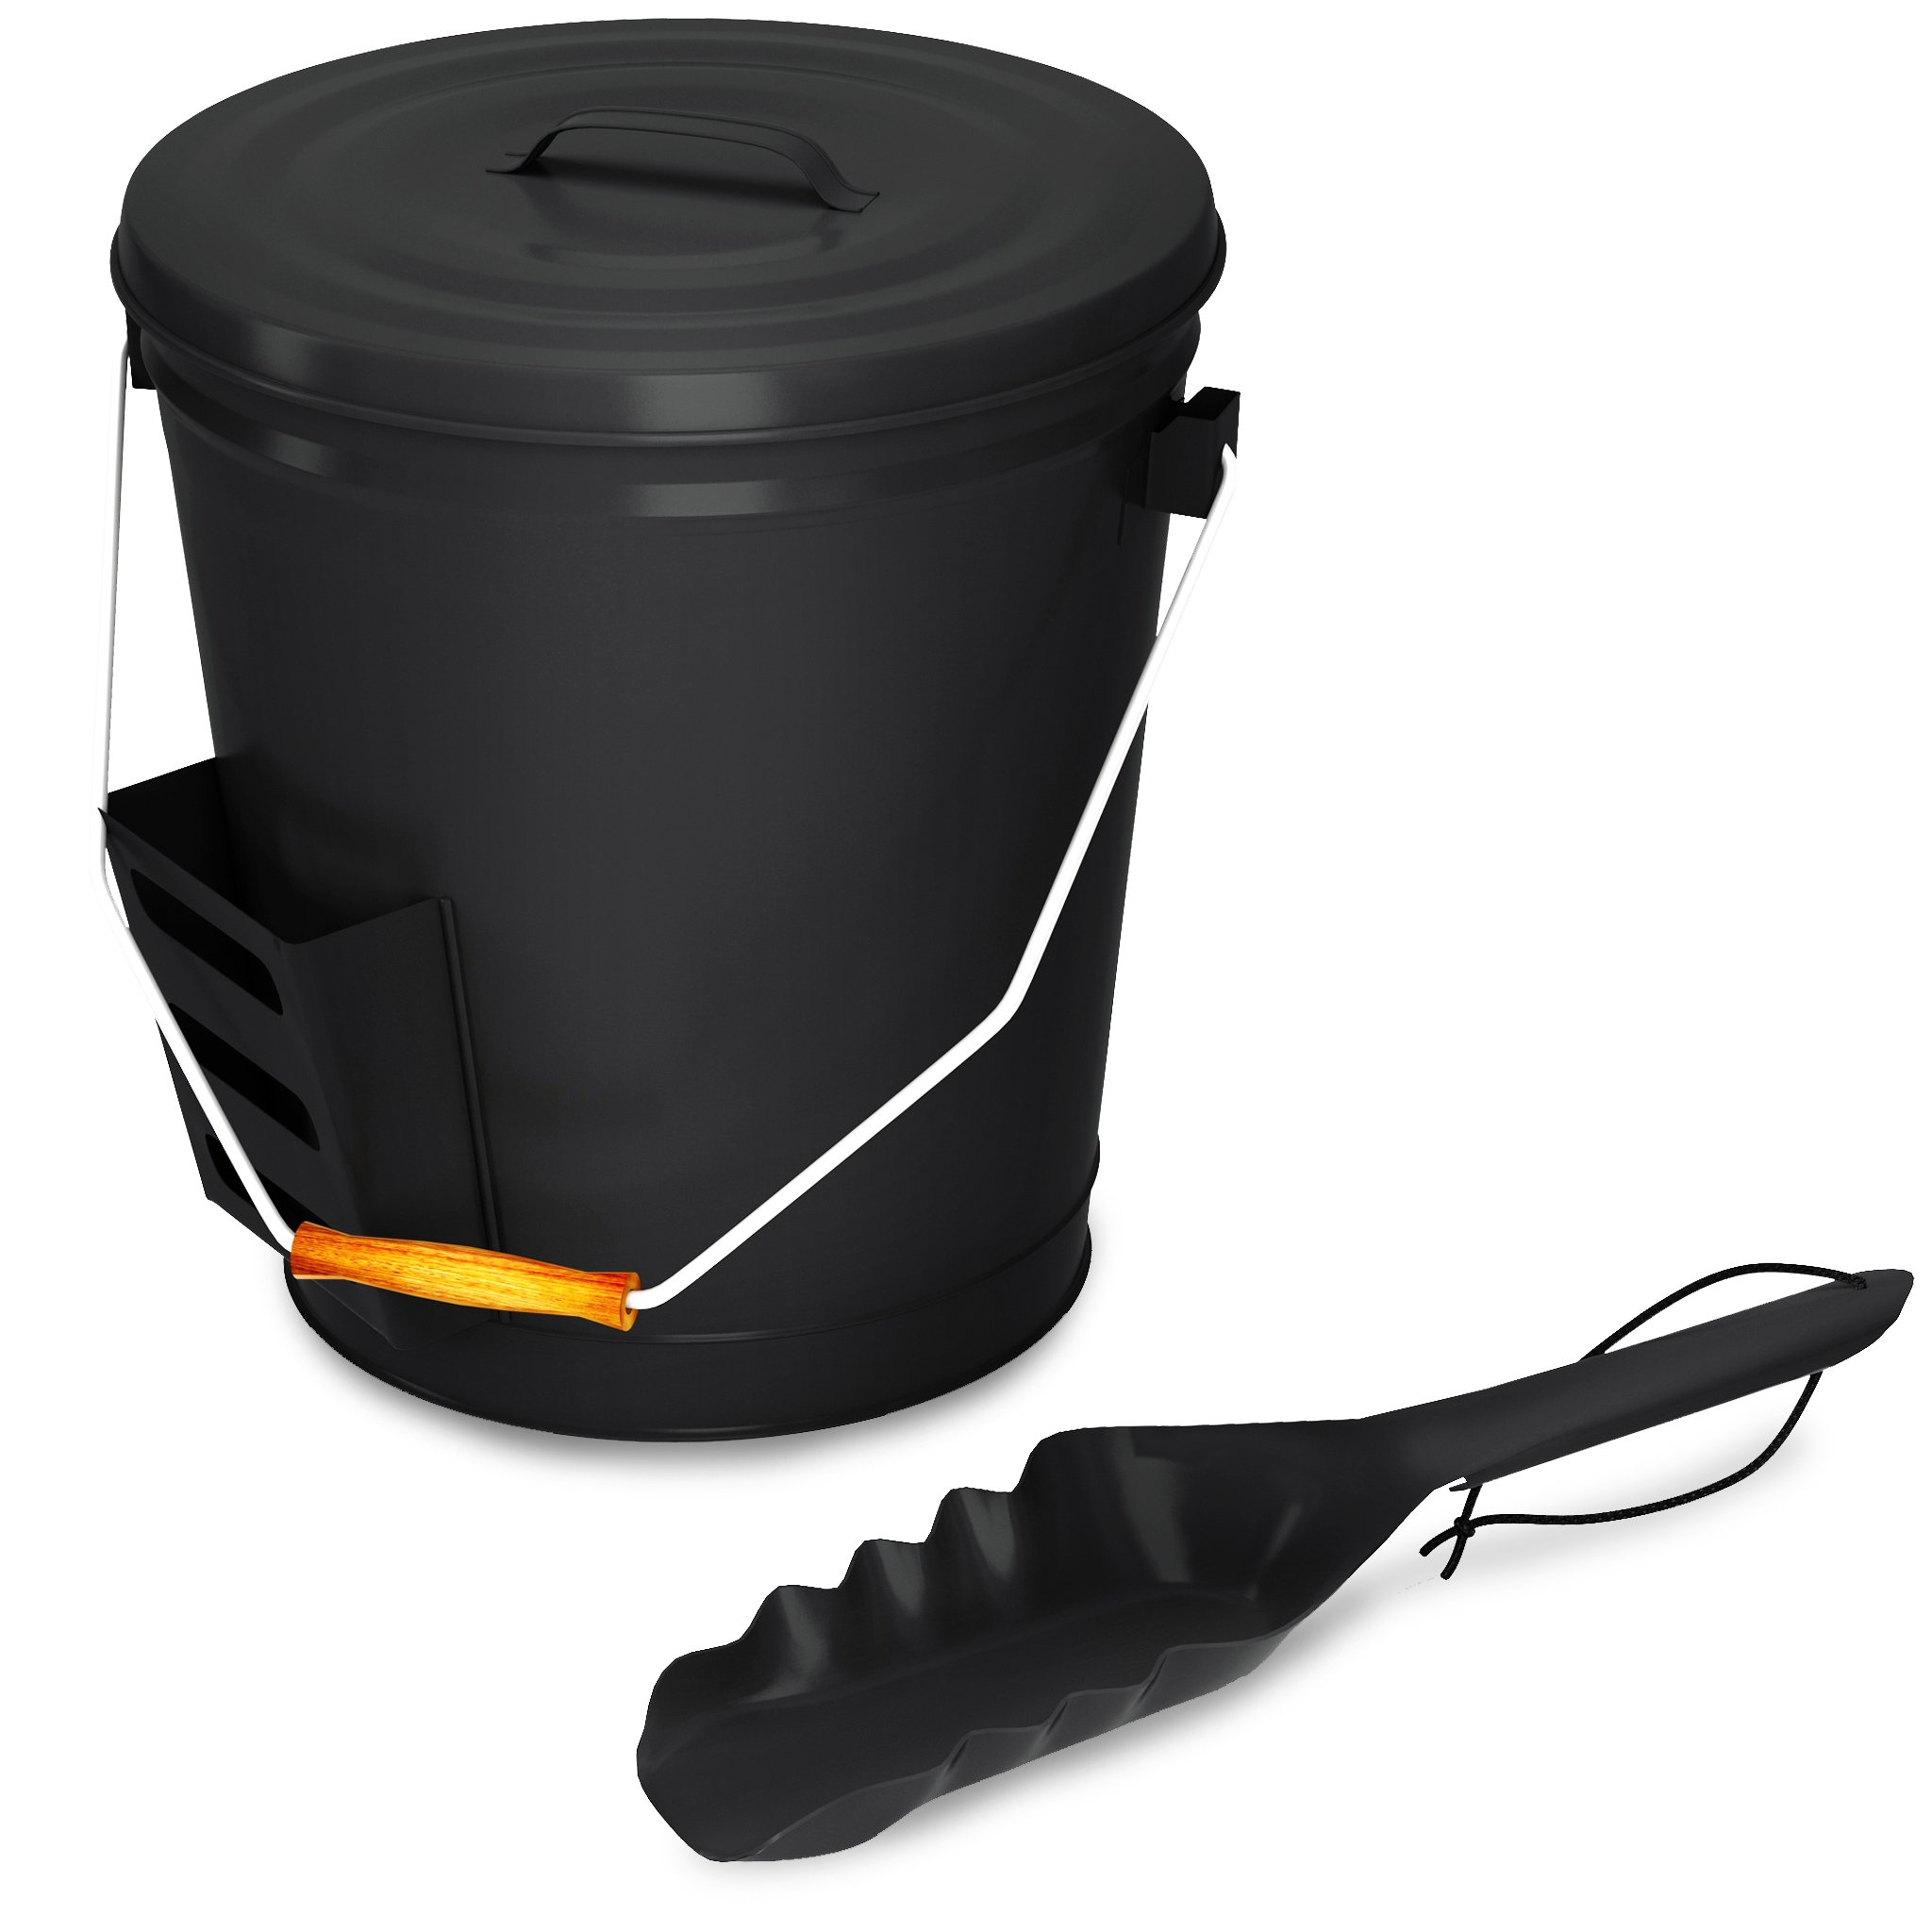 Home-Complete HC-7004 4.75 Gallon Black Ash Bucket with Lid and Shovel-Essential Tools for Fireplaces, Fire Pits, Wood Burning Stoves-Hearth Accessories by Home-Complete (Image #1)